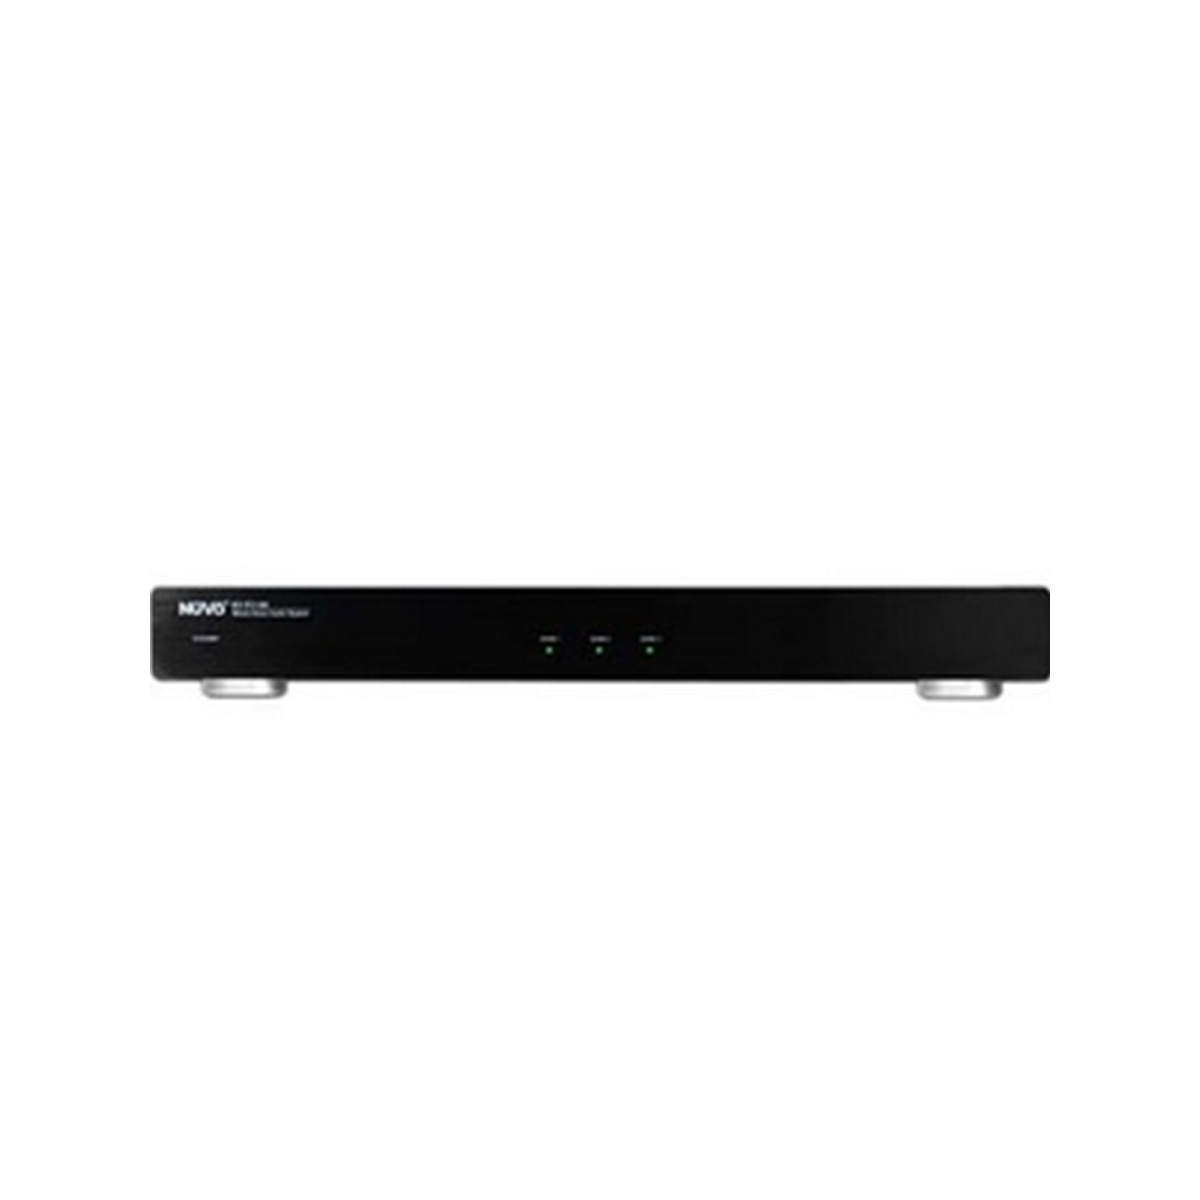 NUV-NV-P3100-NA Professional Grade Three Zone Stereo Amplifier, 40 Watts Per Zone. Offers mastering grade, zone-to-zone access to Internet radio, network content or any local device.